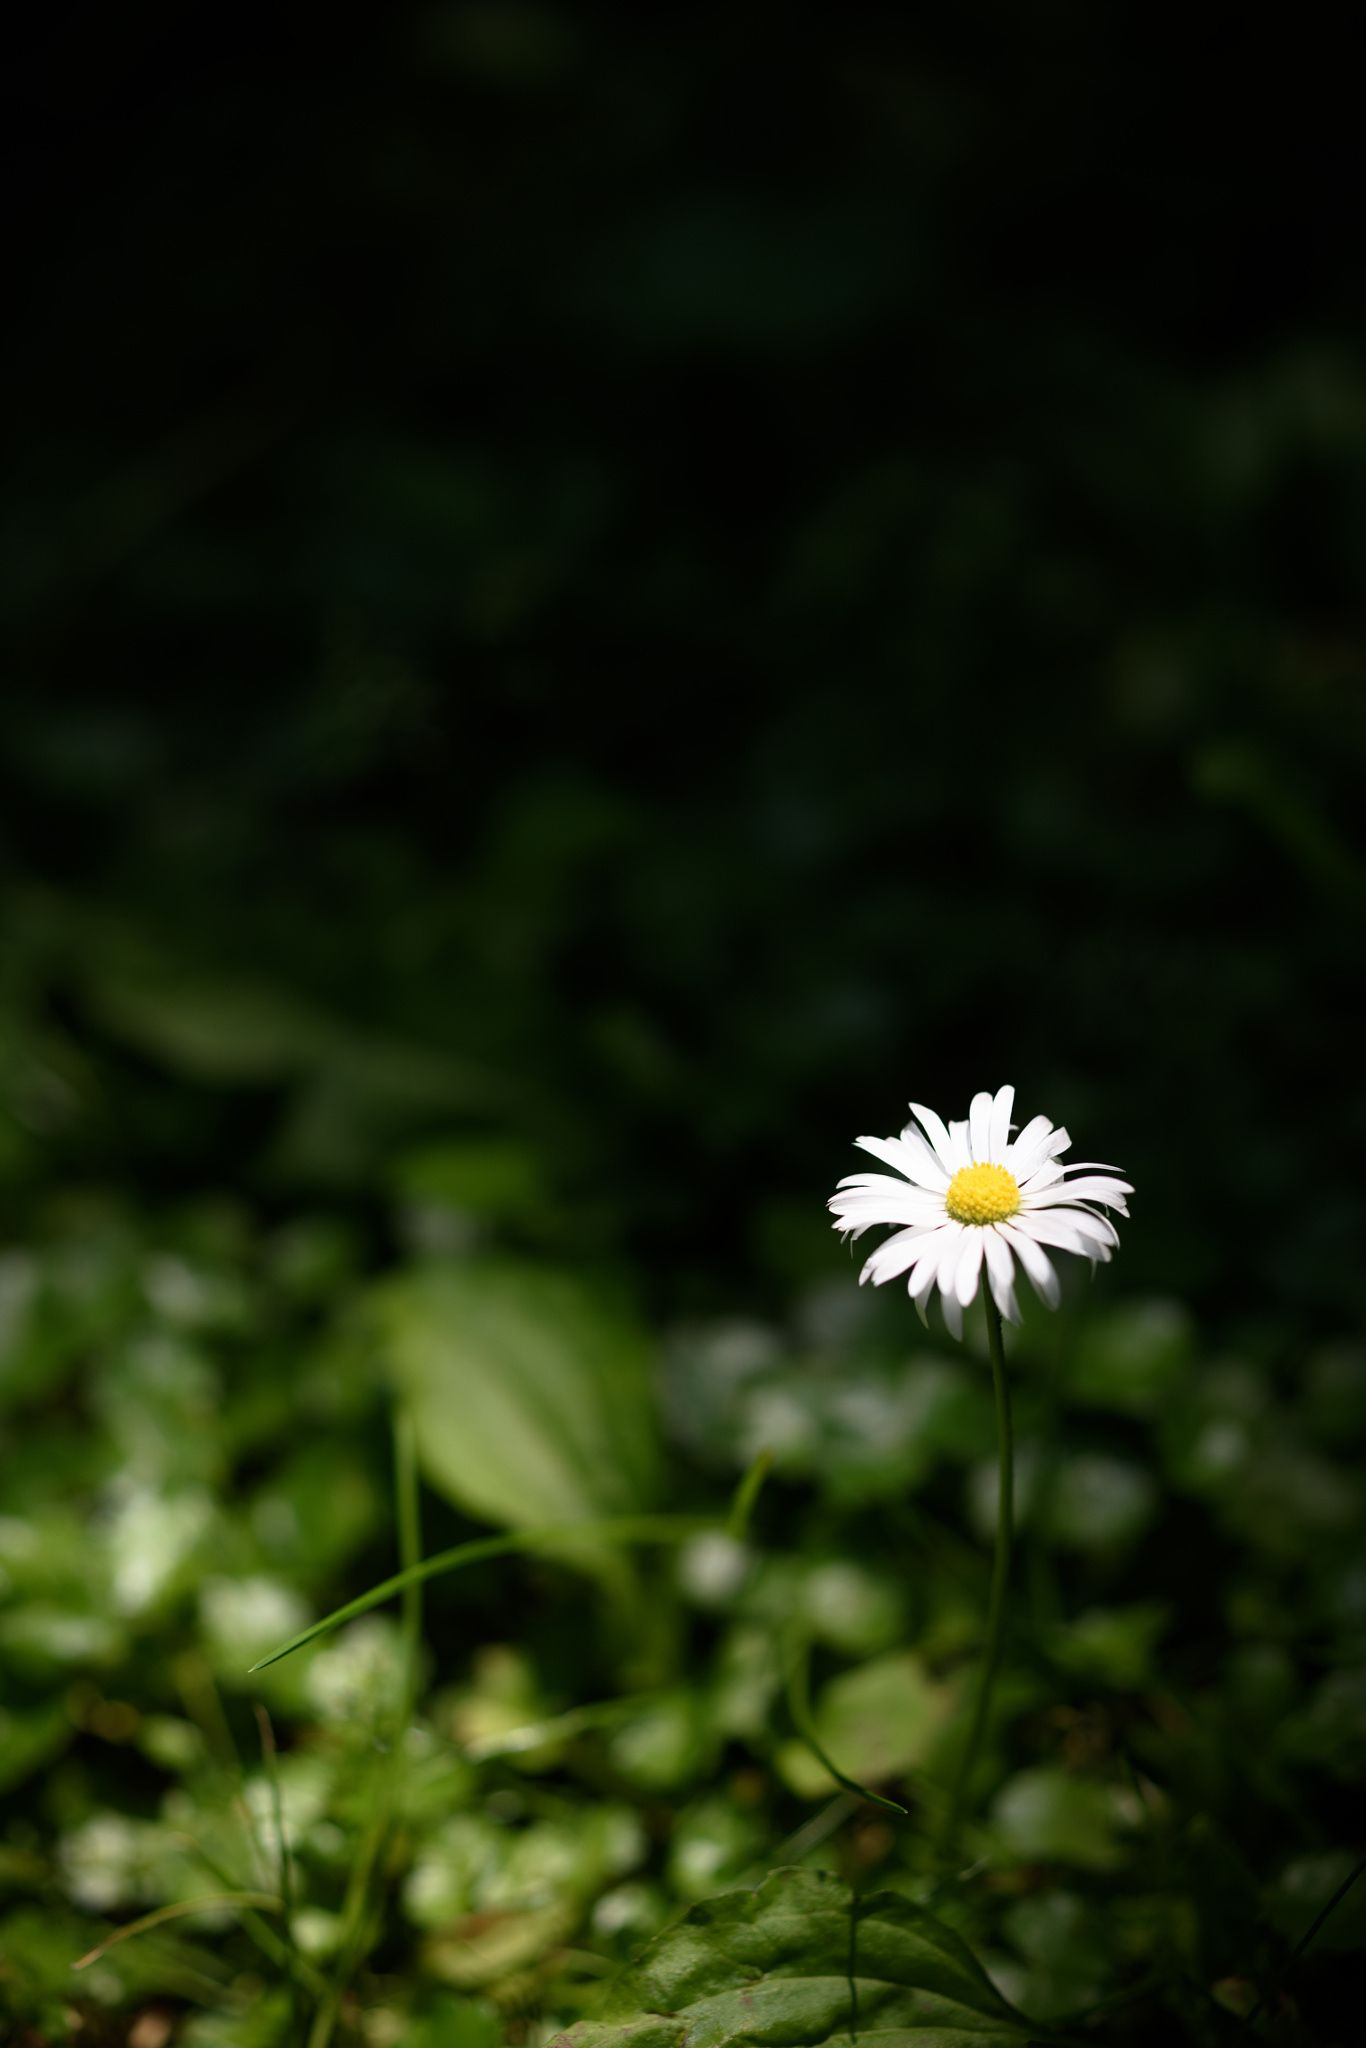 Latest List of Lock Screen Iphone White 2020 by 500px.com